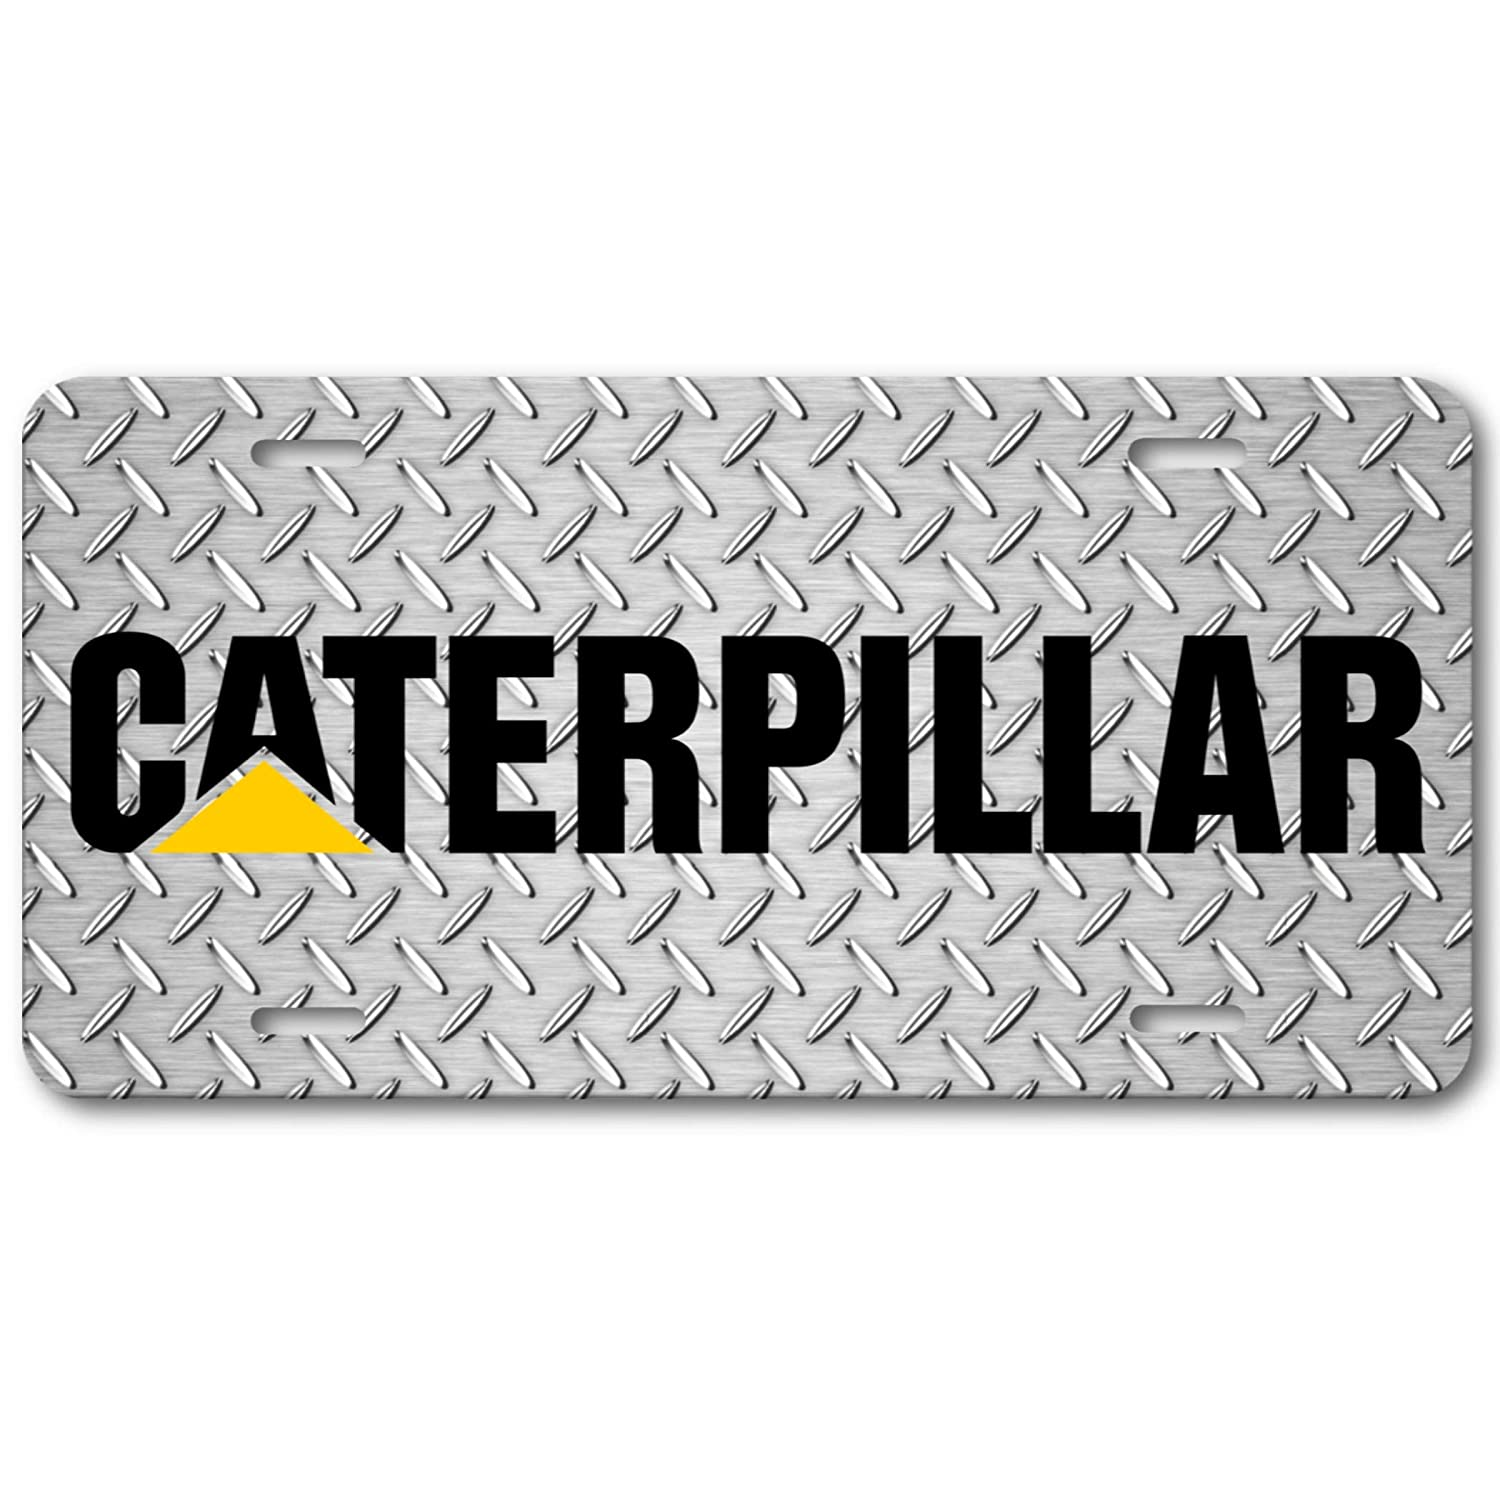 Voss Collectables Caterpillar Rugged Metal Aluminum Vanity License Plate Tag Car Truck SUV